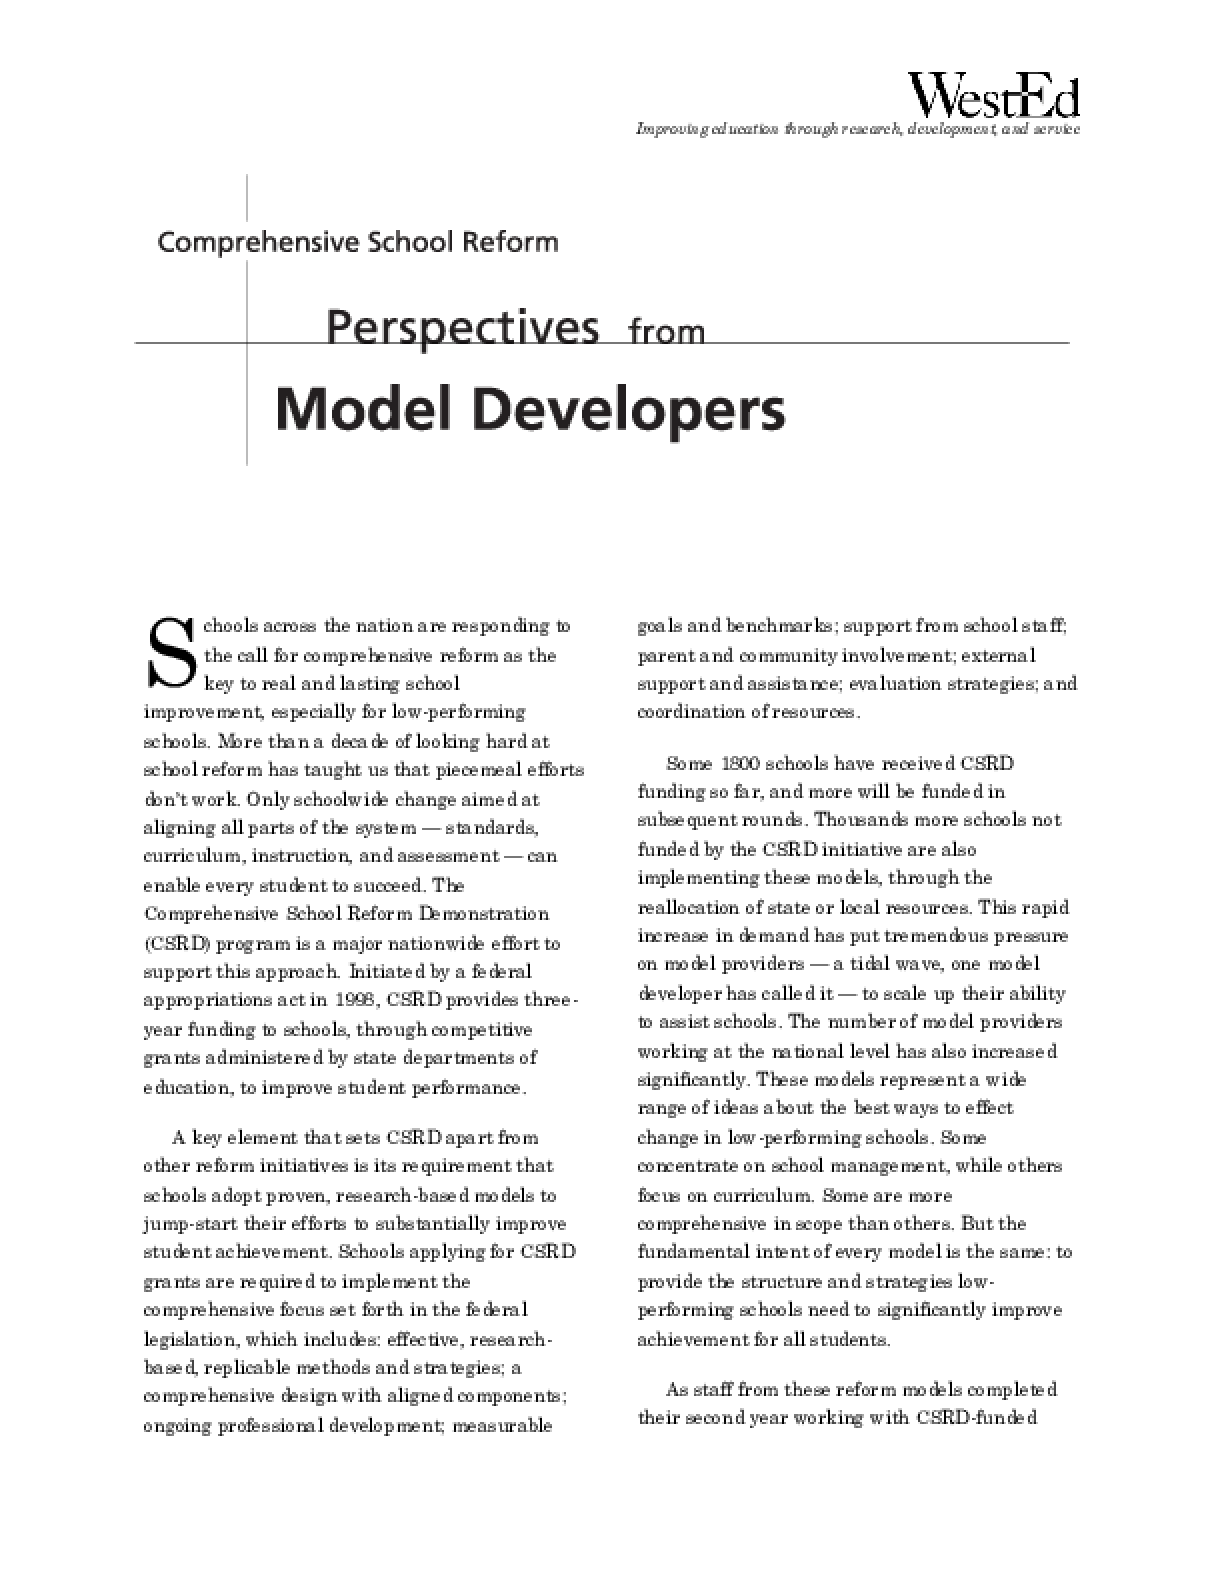 Comprehensive School Reform: Perspectives from Model Developers